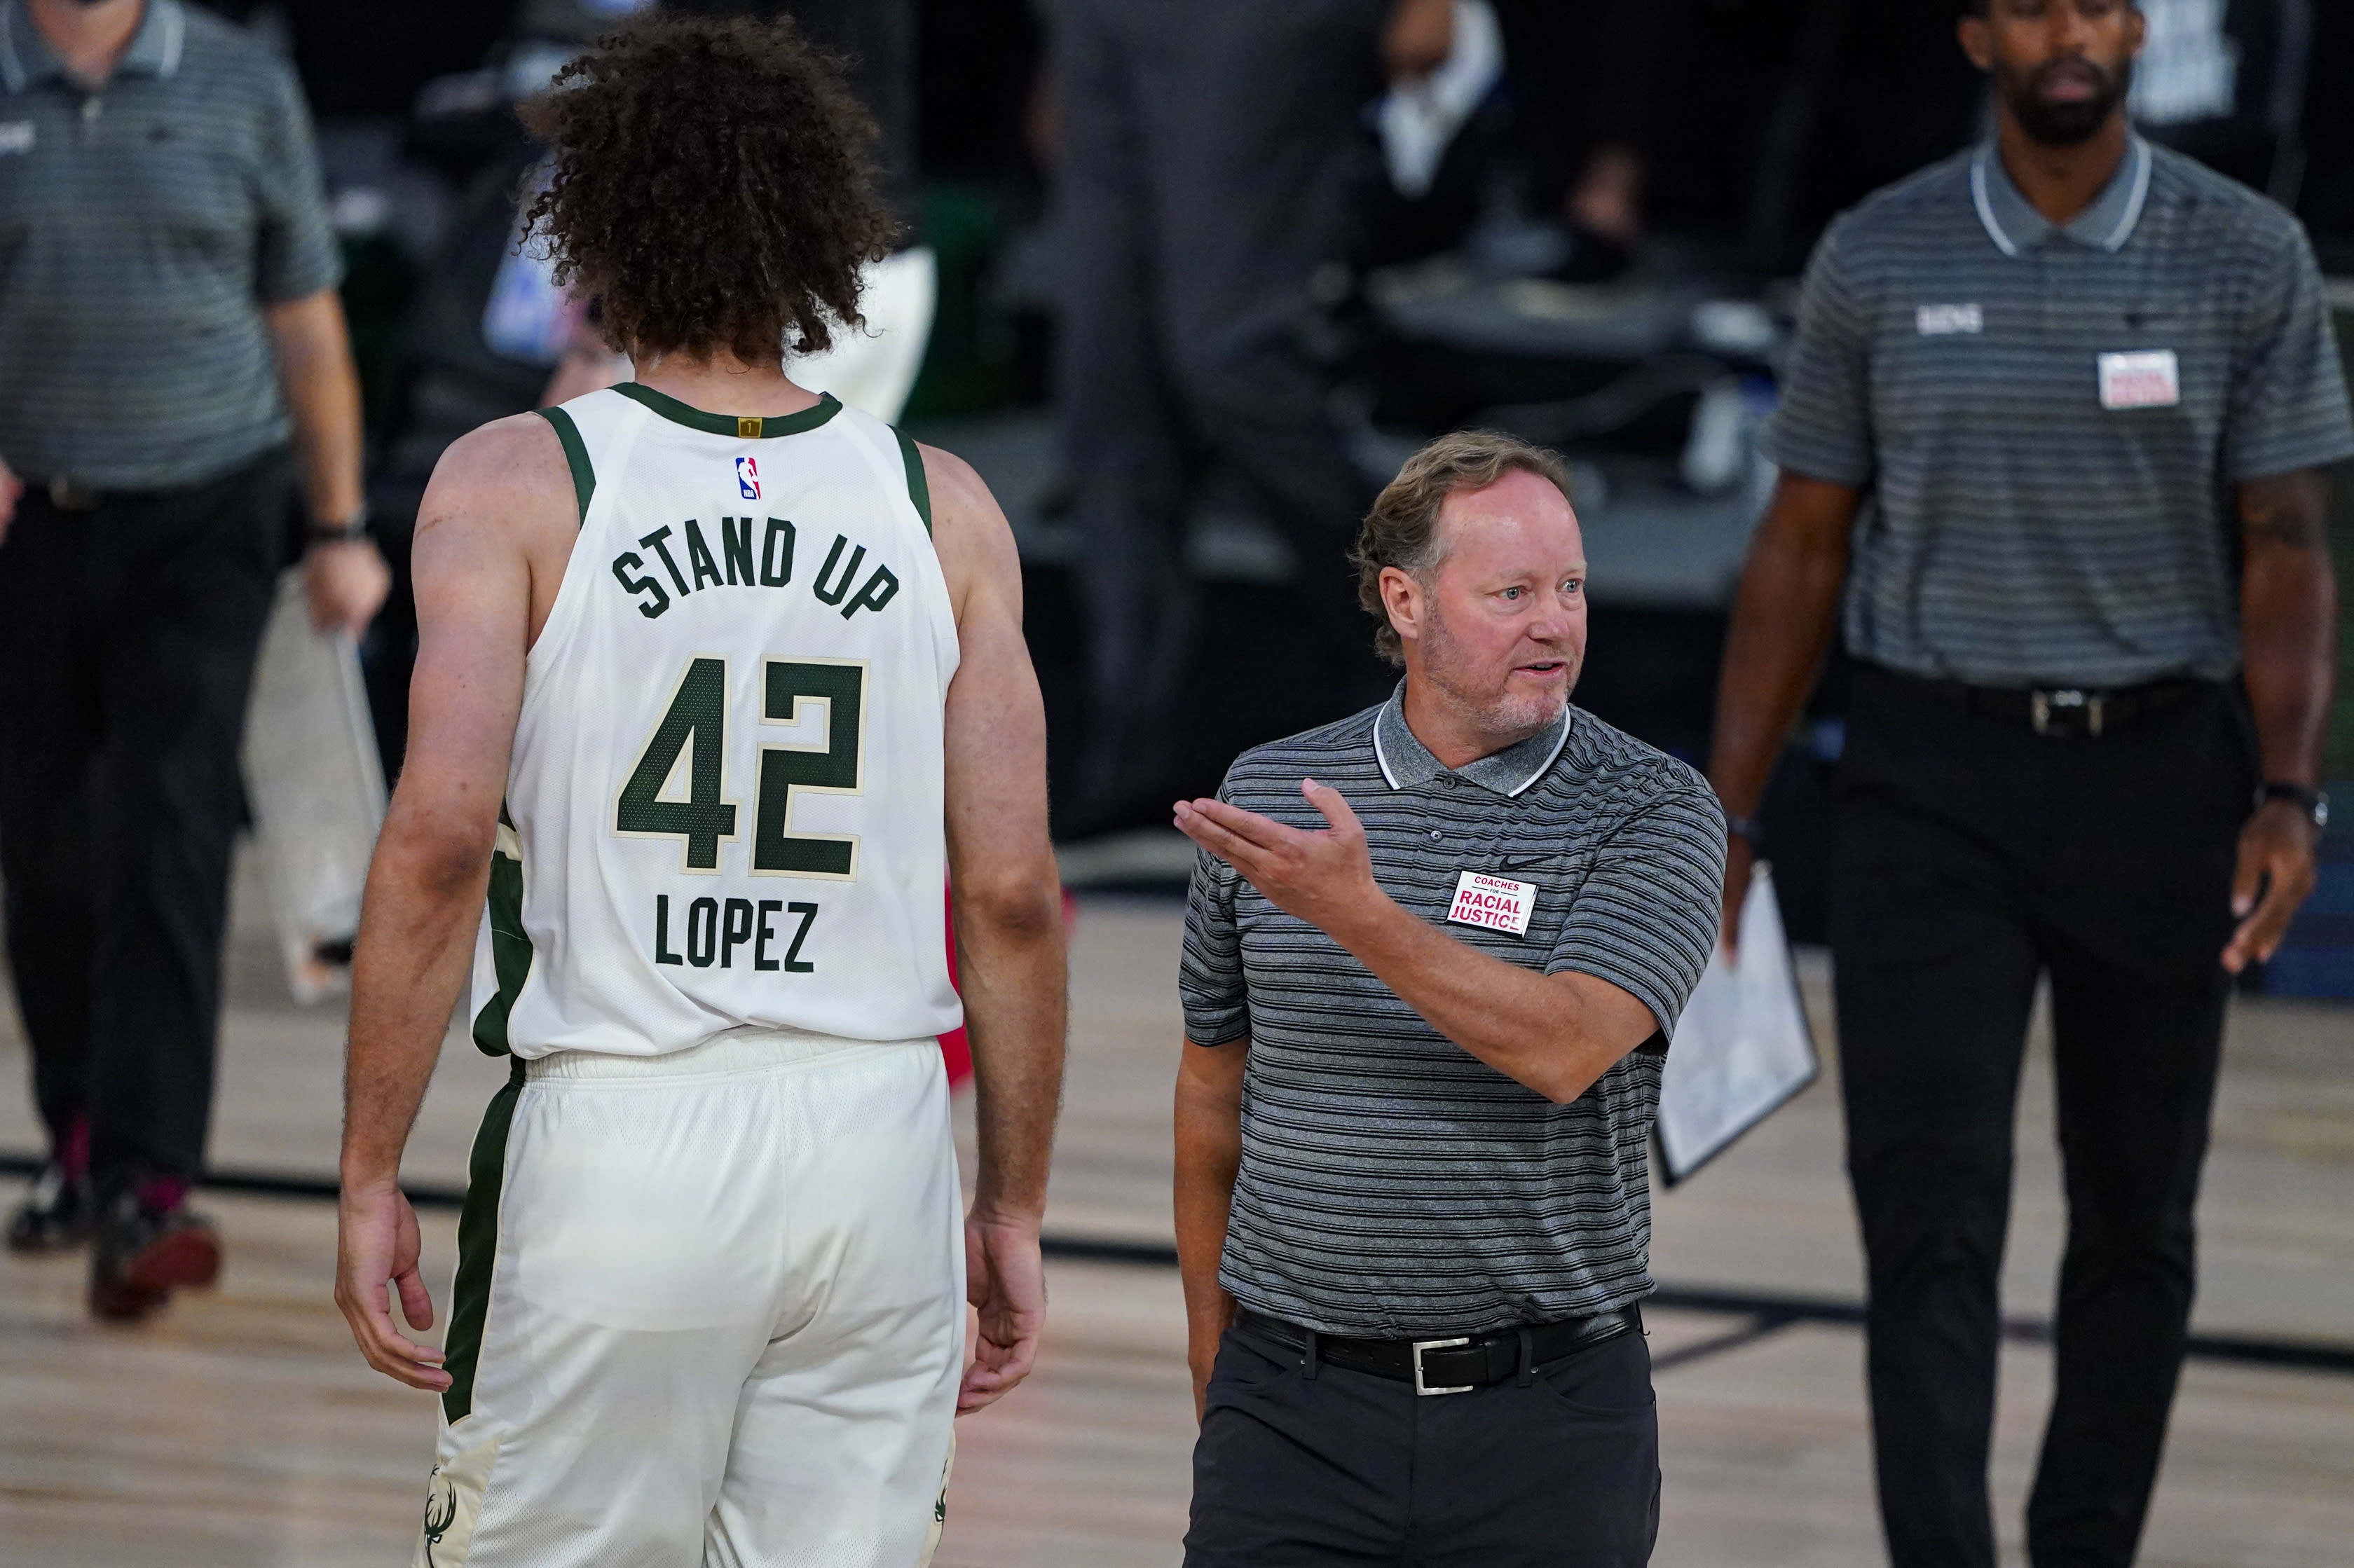 Milwaukee Bucks head coach Mike Budenholzer questions an official during the second half of an NBA basketball game against the Brooklyn Nets Tuesday, Aug. 4, 2020 in Lake Buena Vista, Fla. (AP Photo/Ashley Landis)